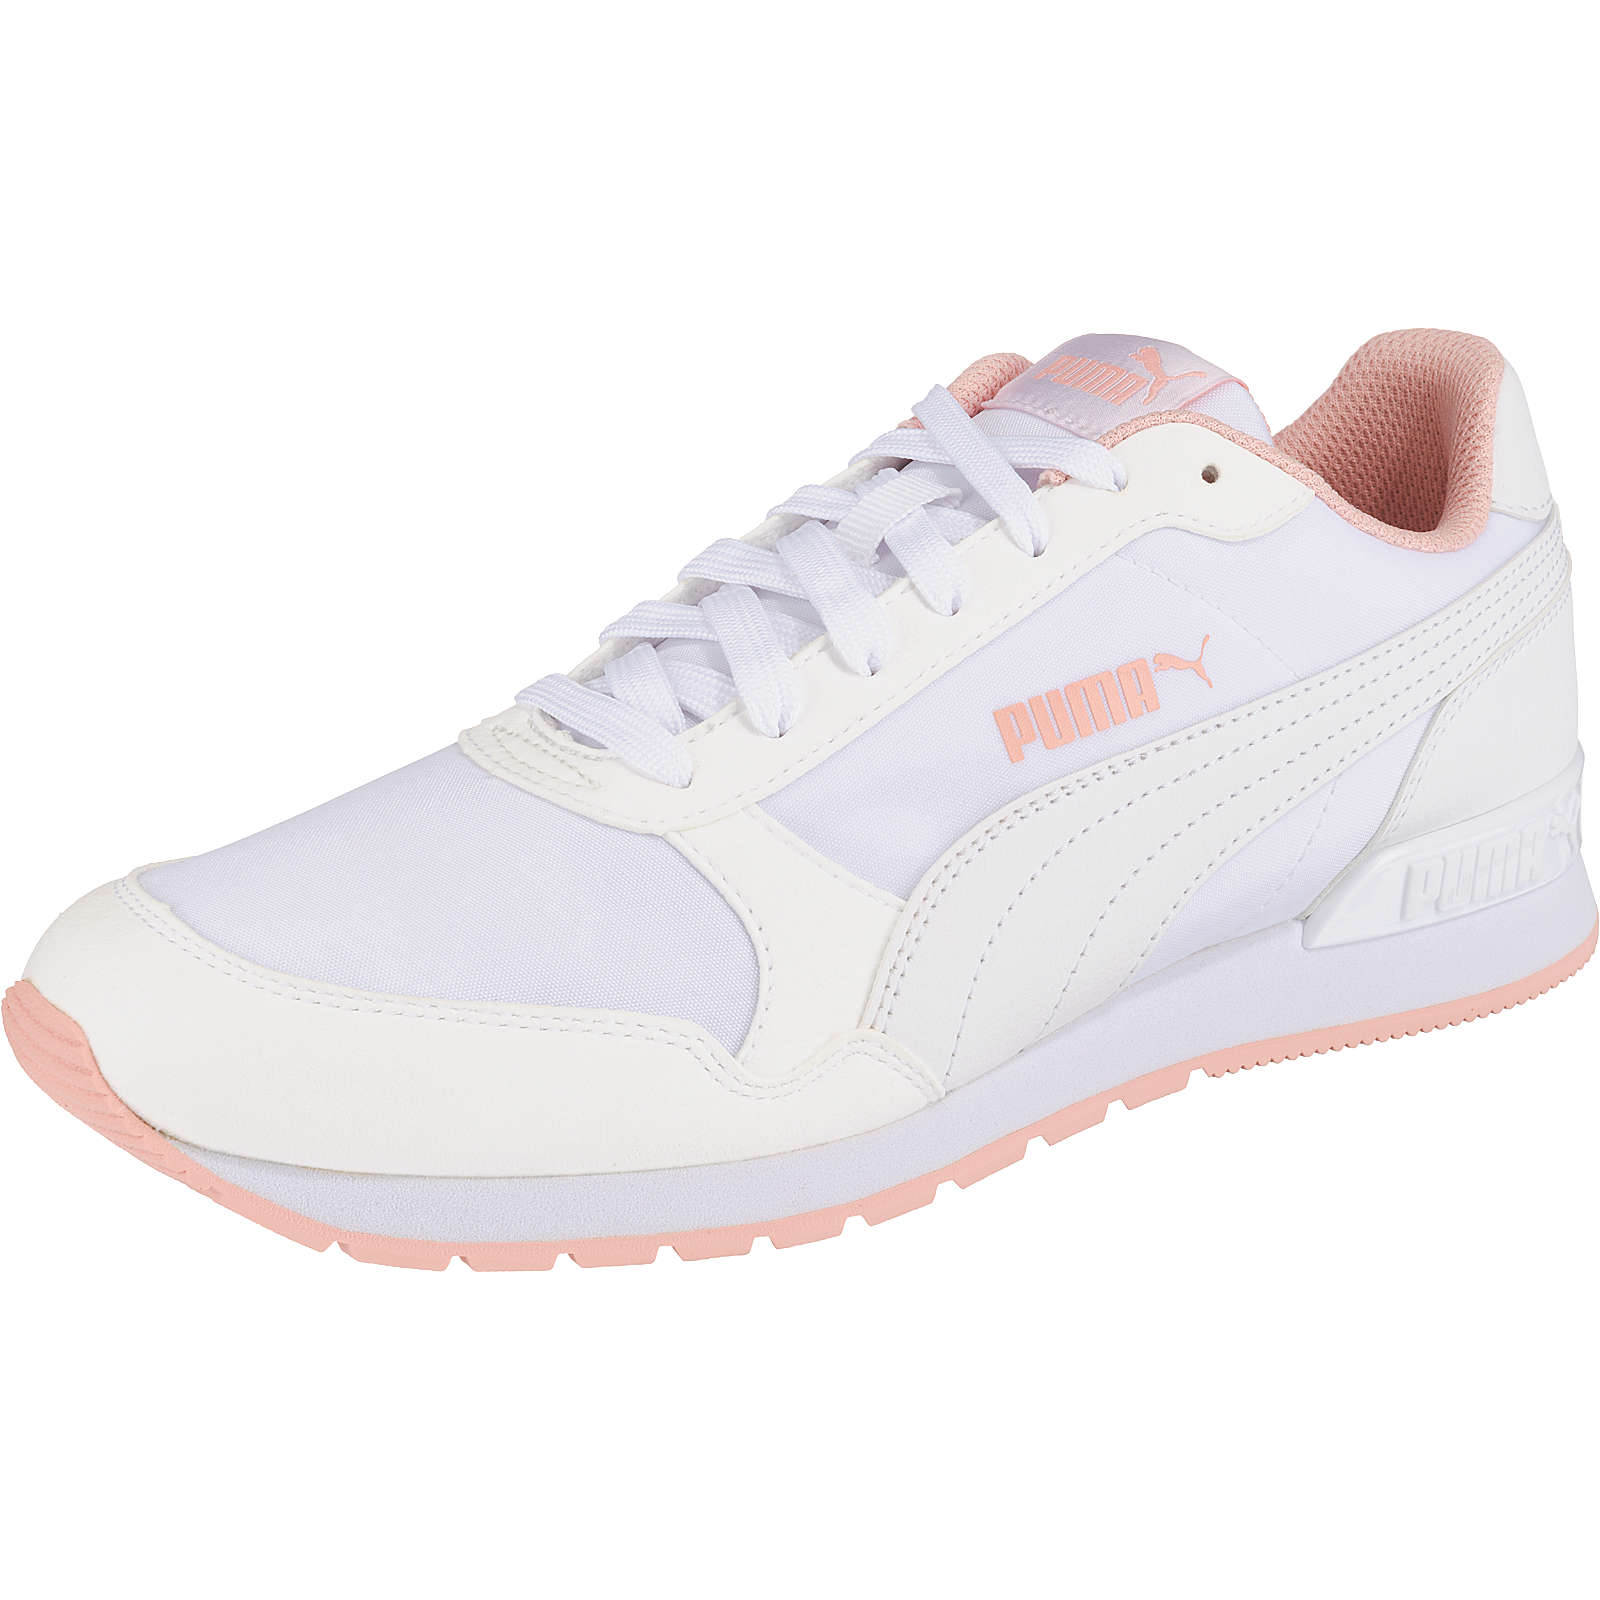 PUMA ST Runner Sneakers Low weiß Damen Gr. 36